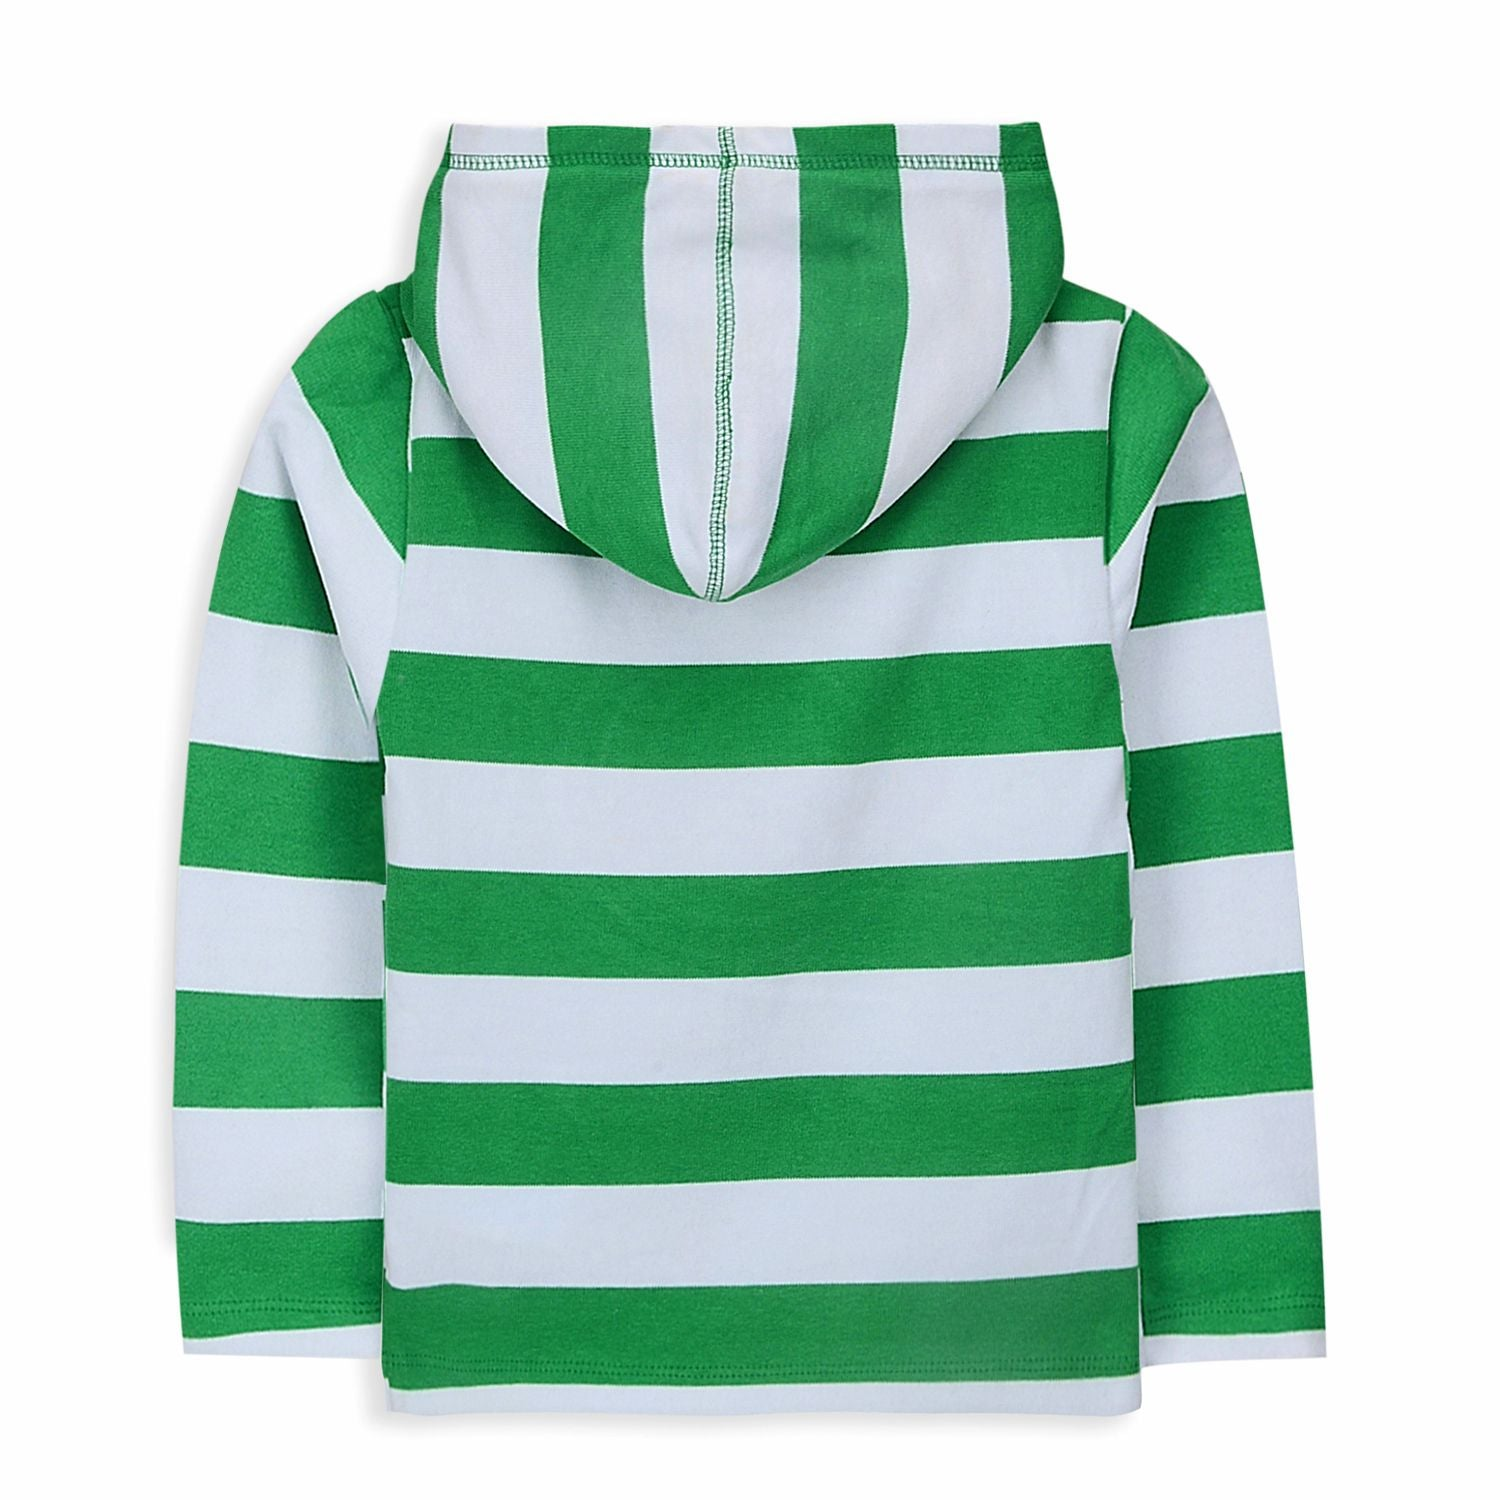 Dartboard Sweatshirt for Boys